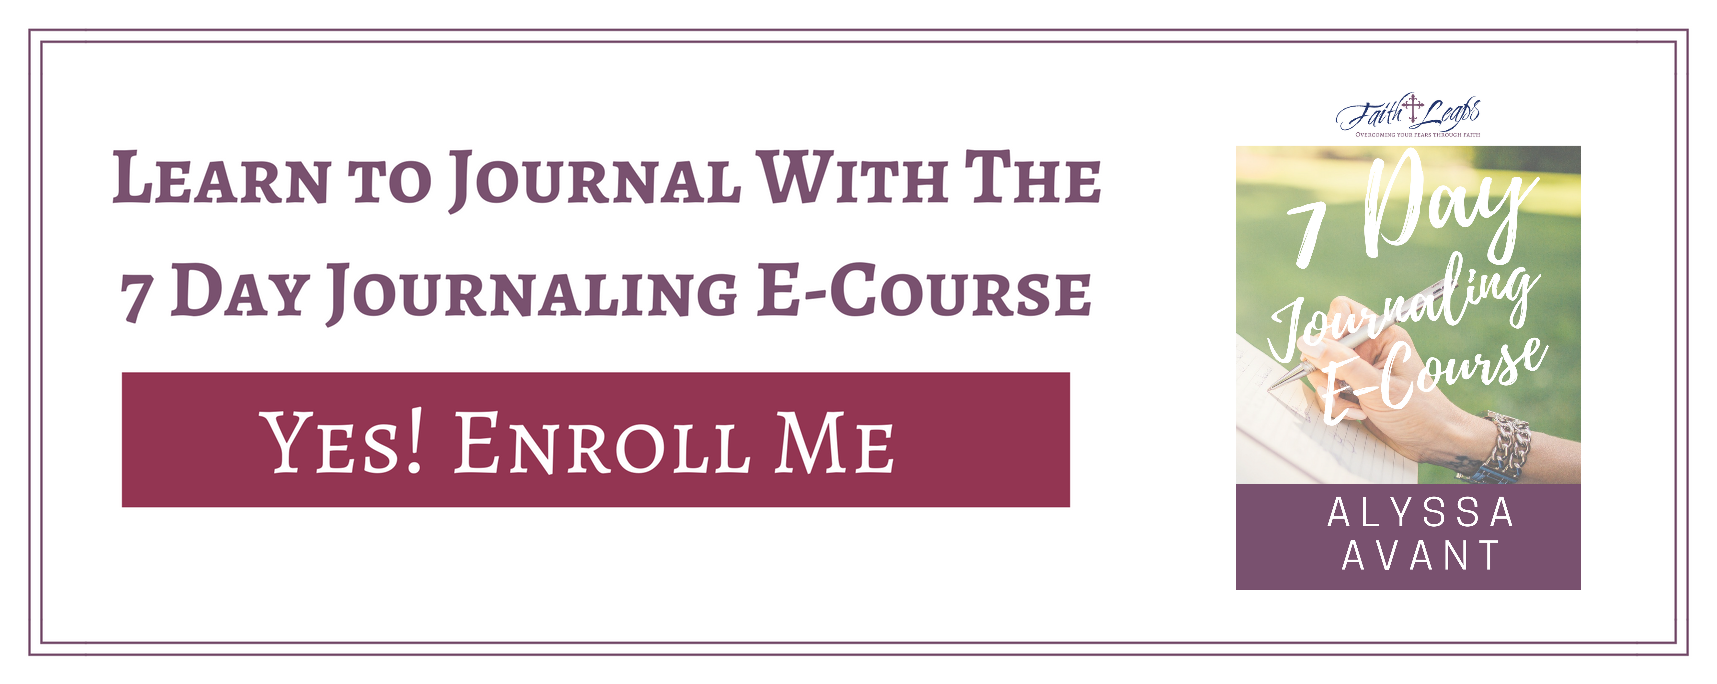 7 Day Journaling E-Course